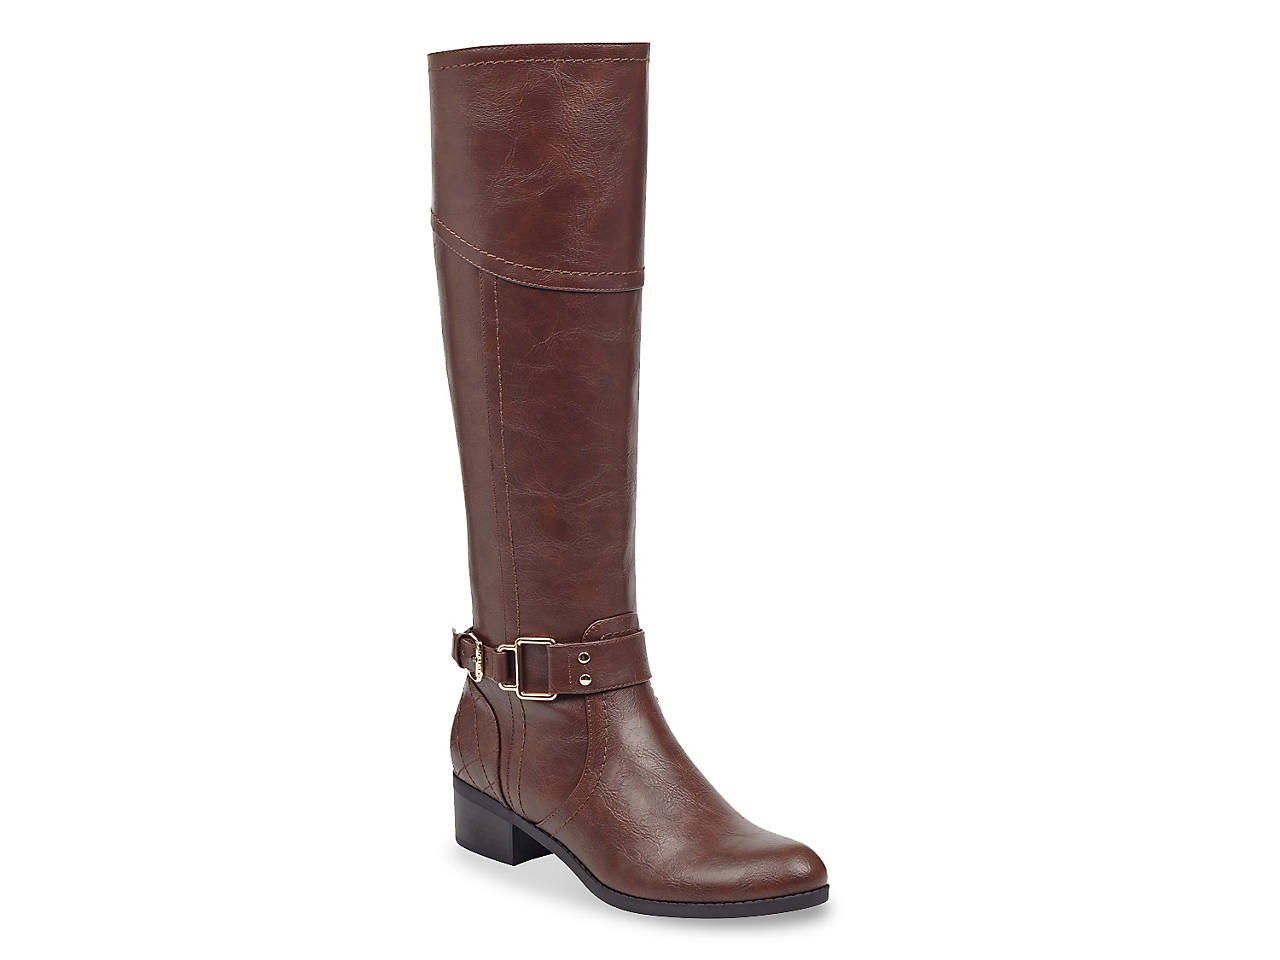 e0a569d4173 Unisa Tenna Wide Calf Riding Boot Women s Shoes